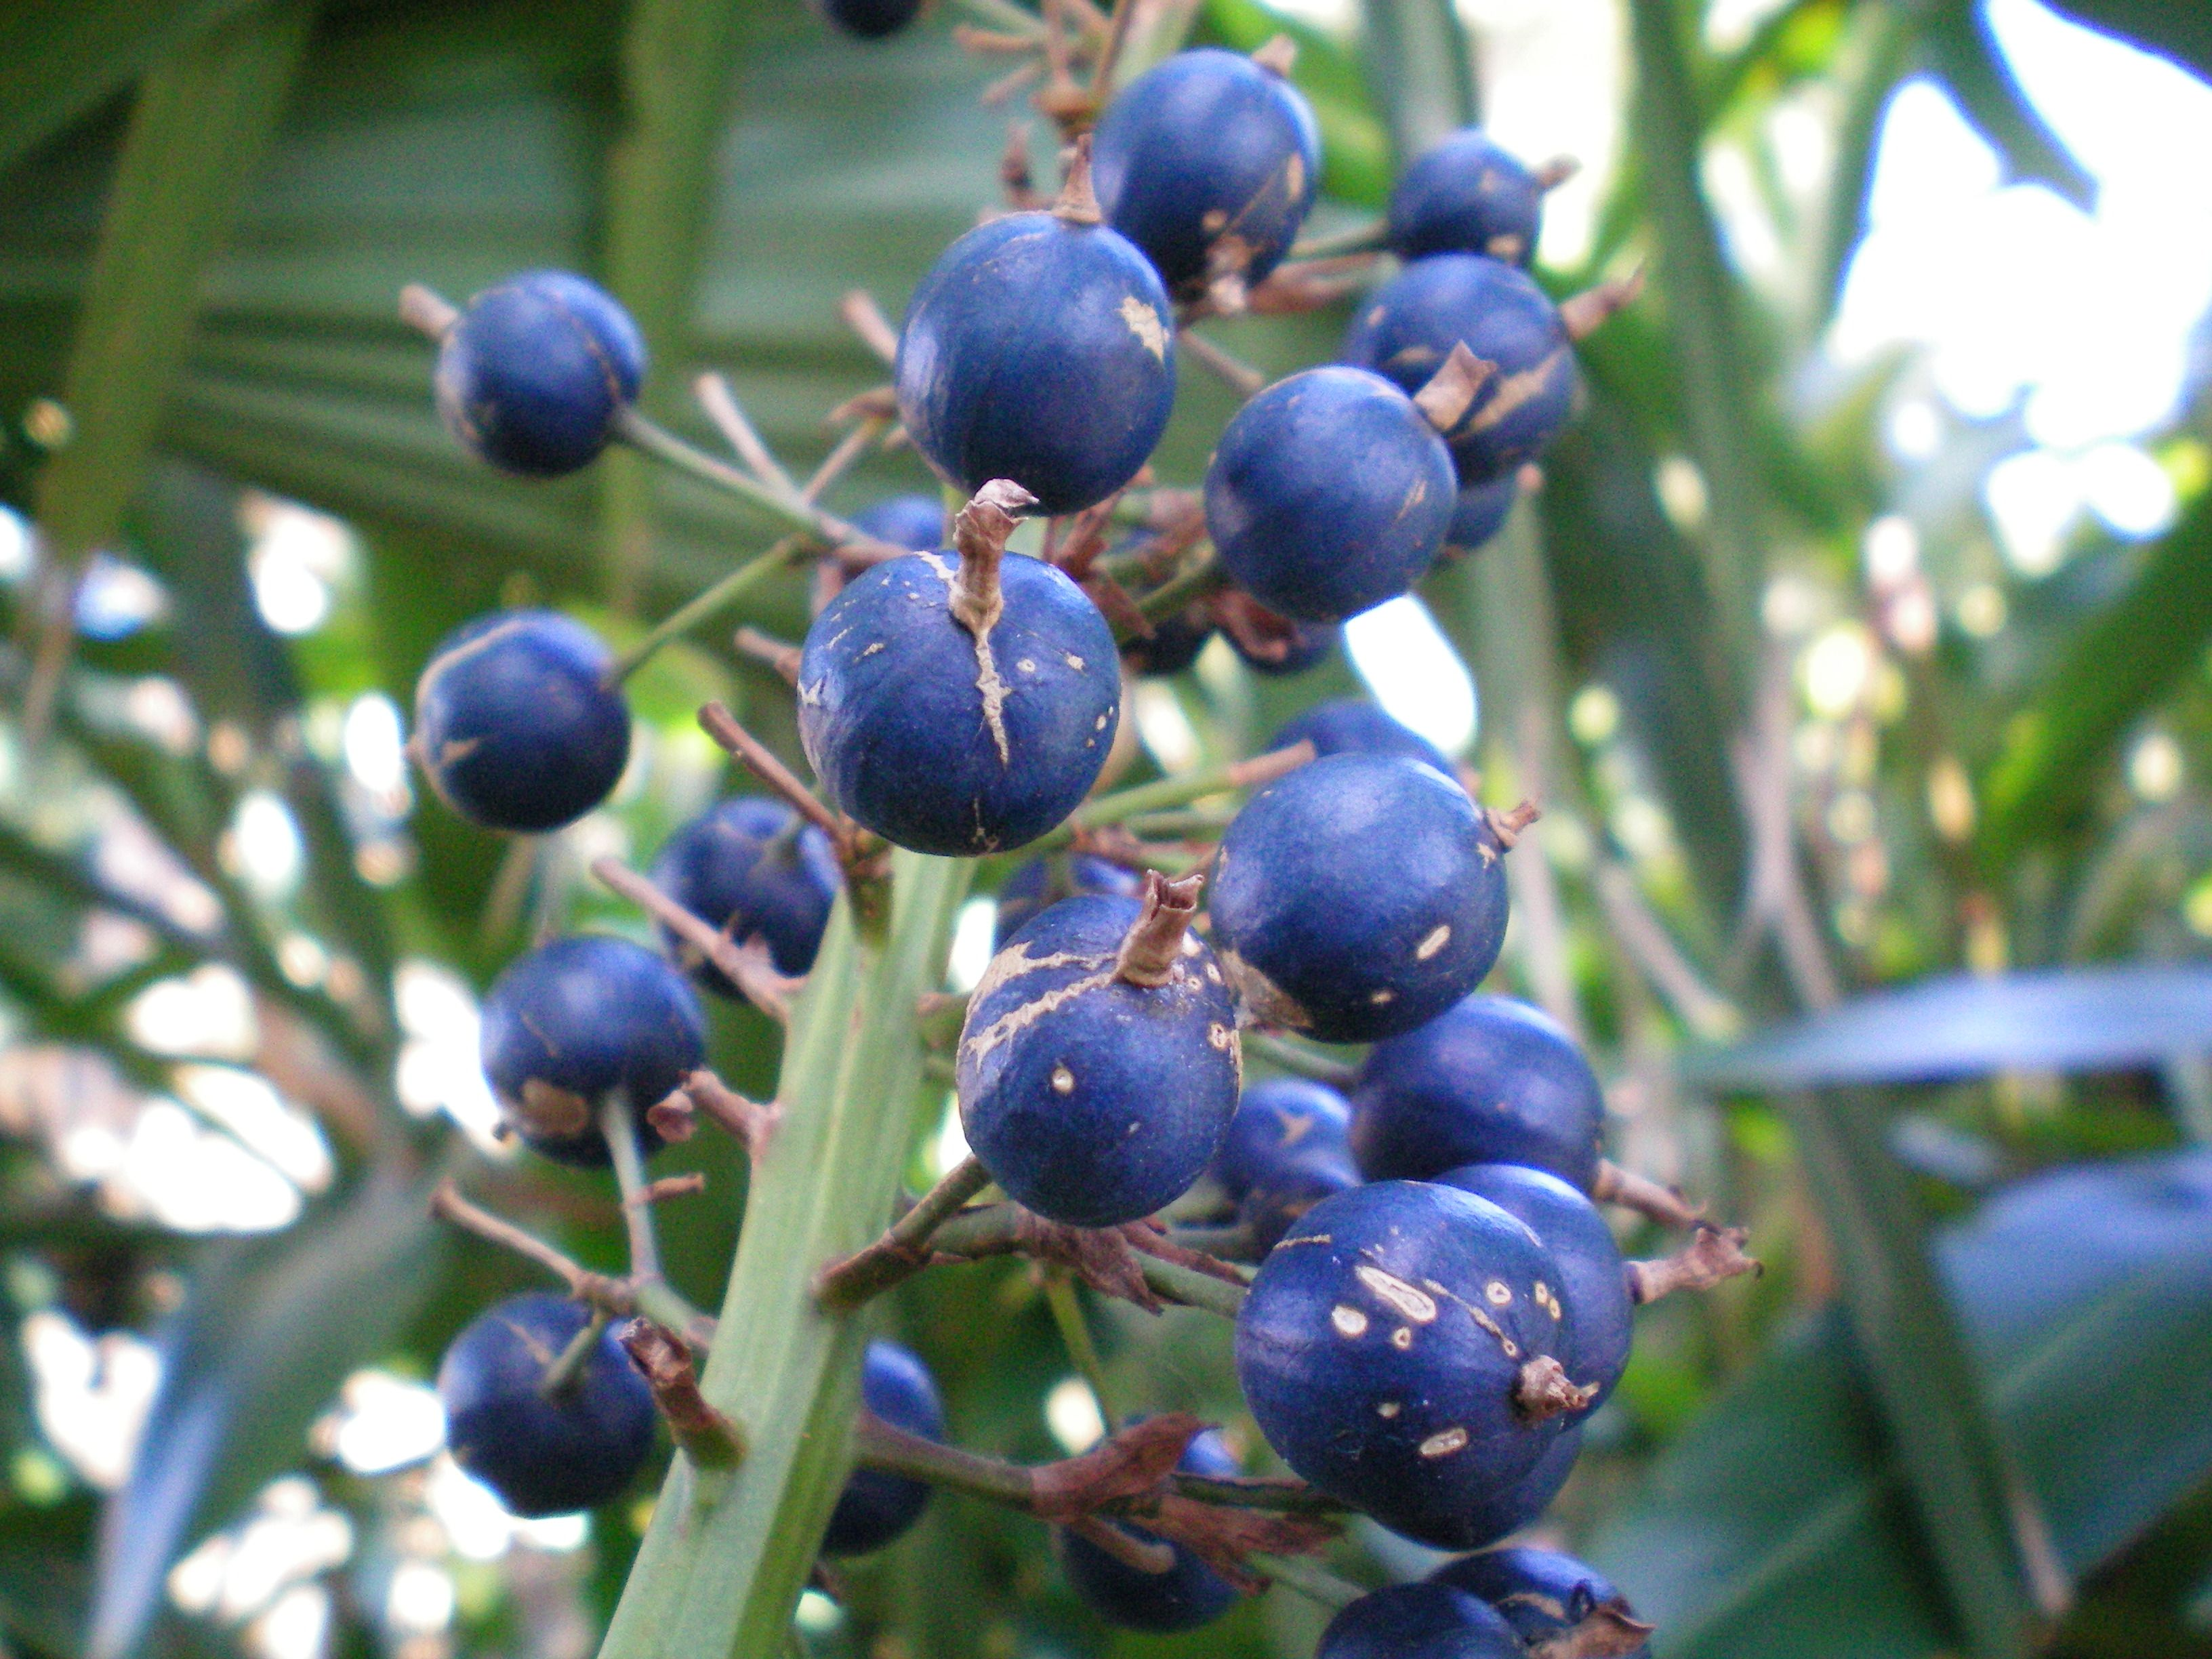 blue berry ginger, found in coastal rainforests in eastern